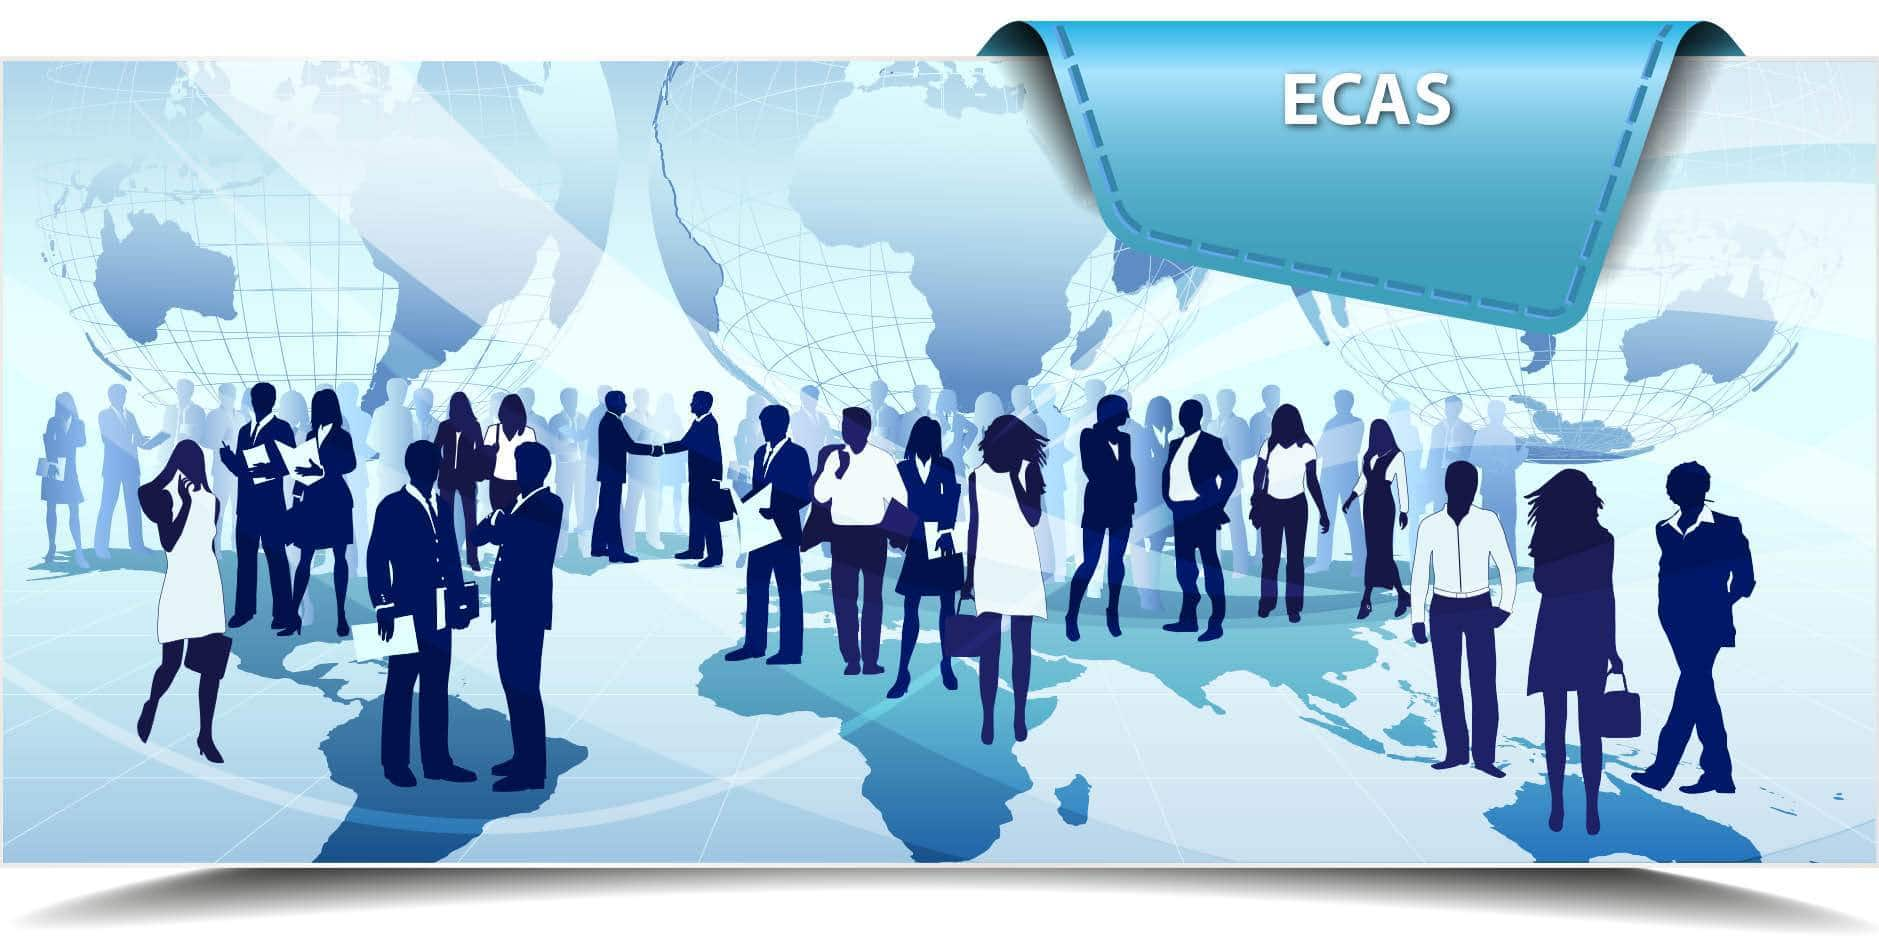 ECAS News Flash: Upholding Freedom Of Movement In A Post-lockdown World | Towards A Citizen-centric EU | DEMOS Research On Four Types Of Populism